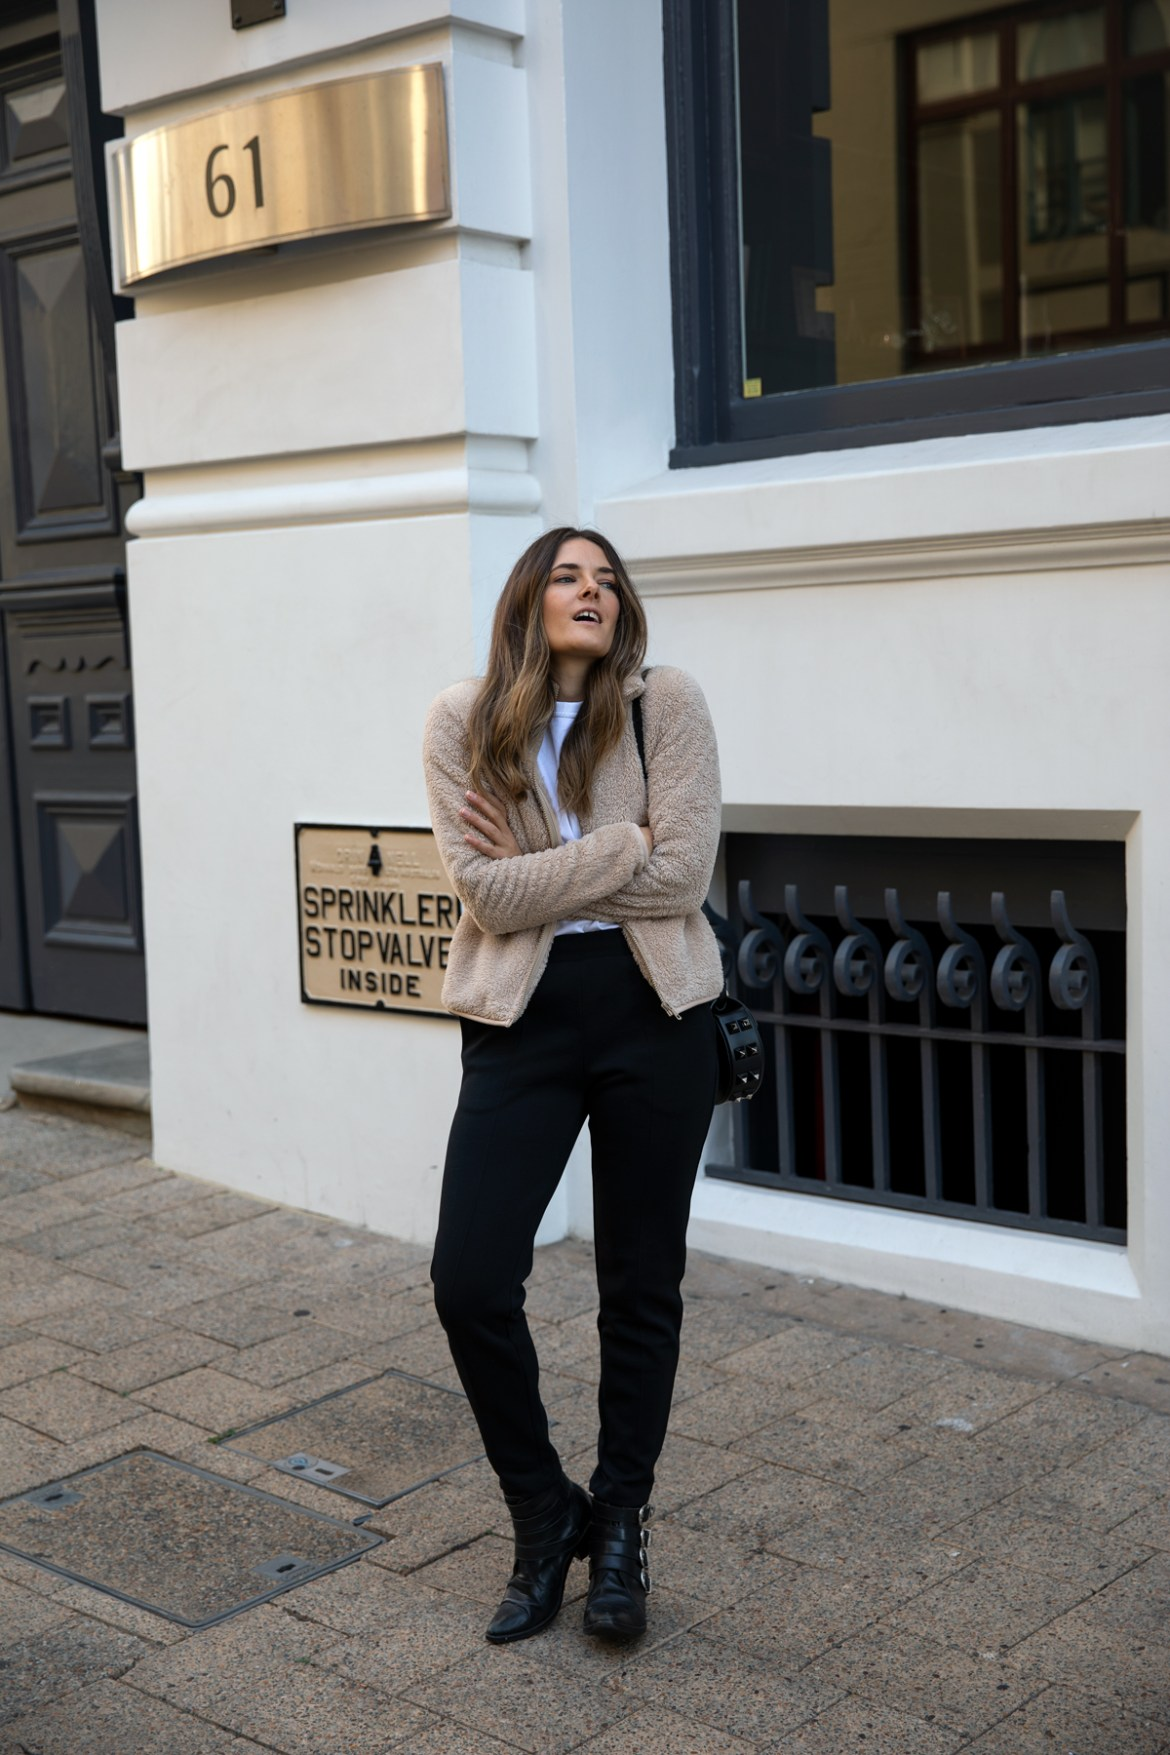 fleece jacket from Uniqlo teddy jacket with track pants for Autumn Winter outfit ideas worn by Inspiring Wit fashion blogger Jenelle